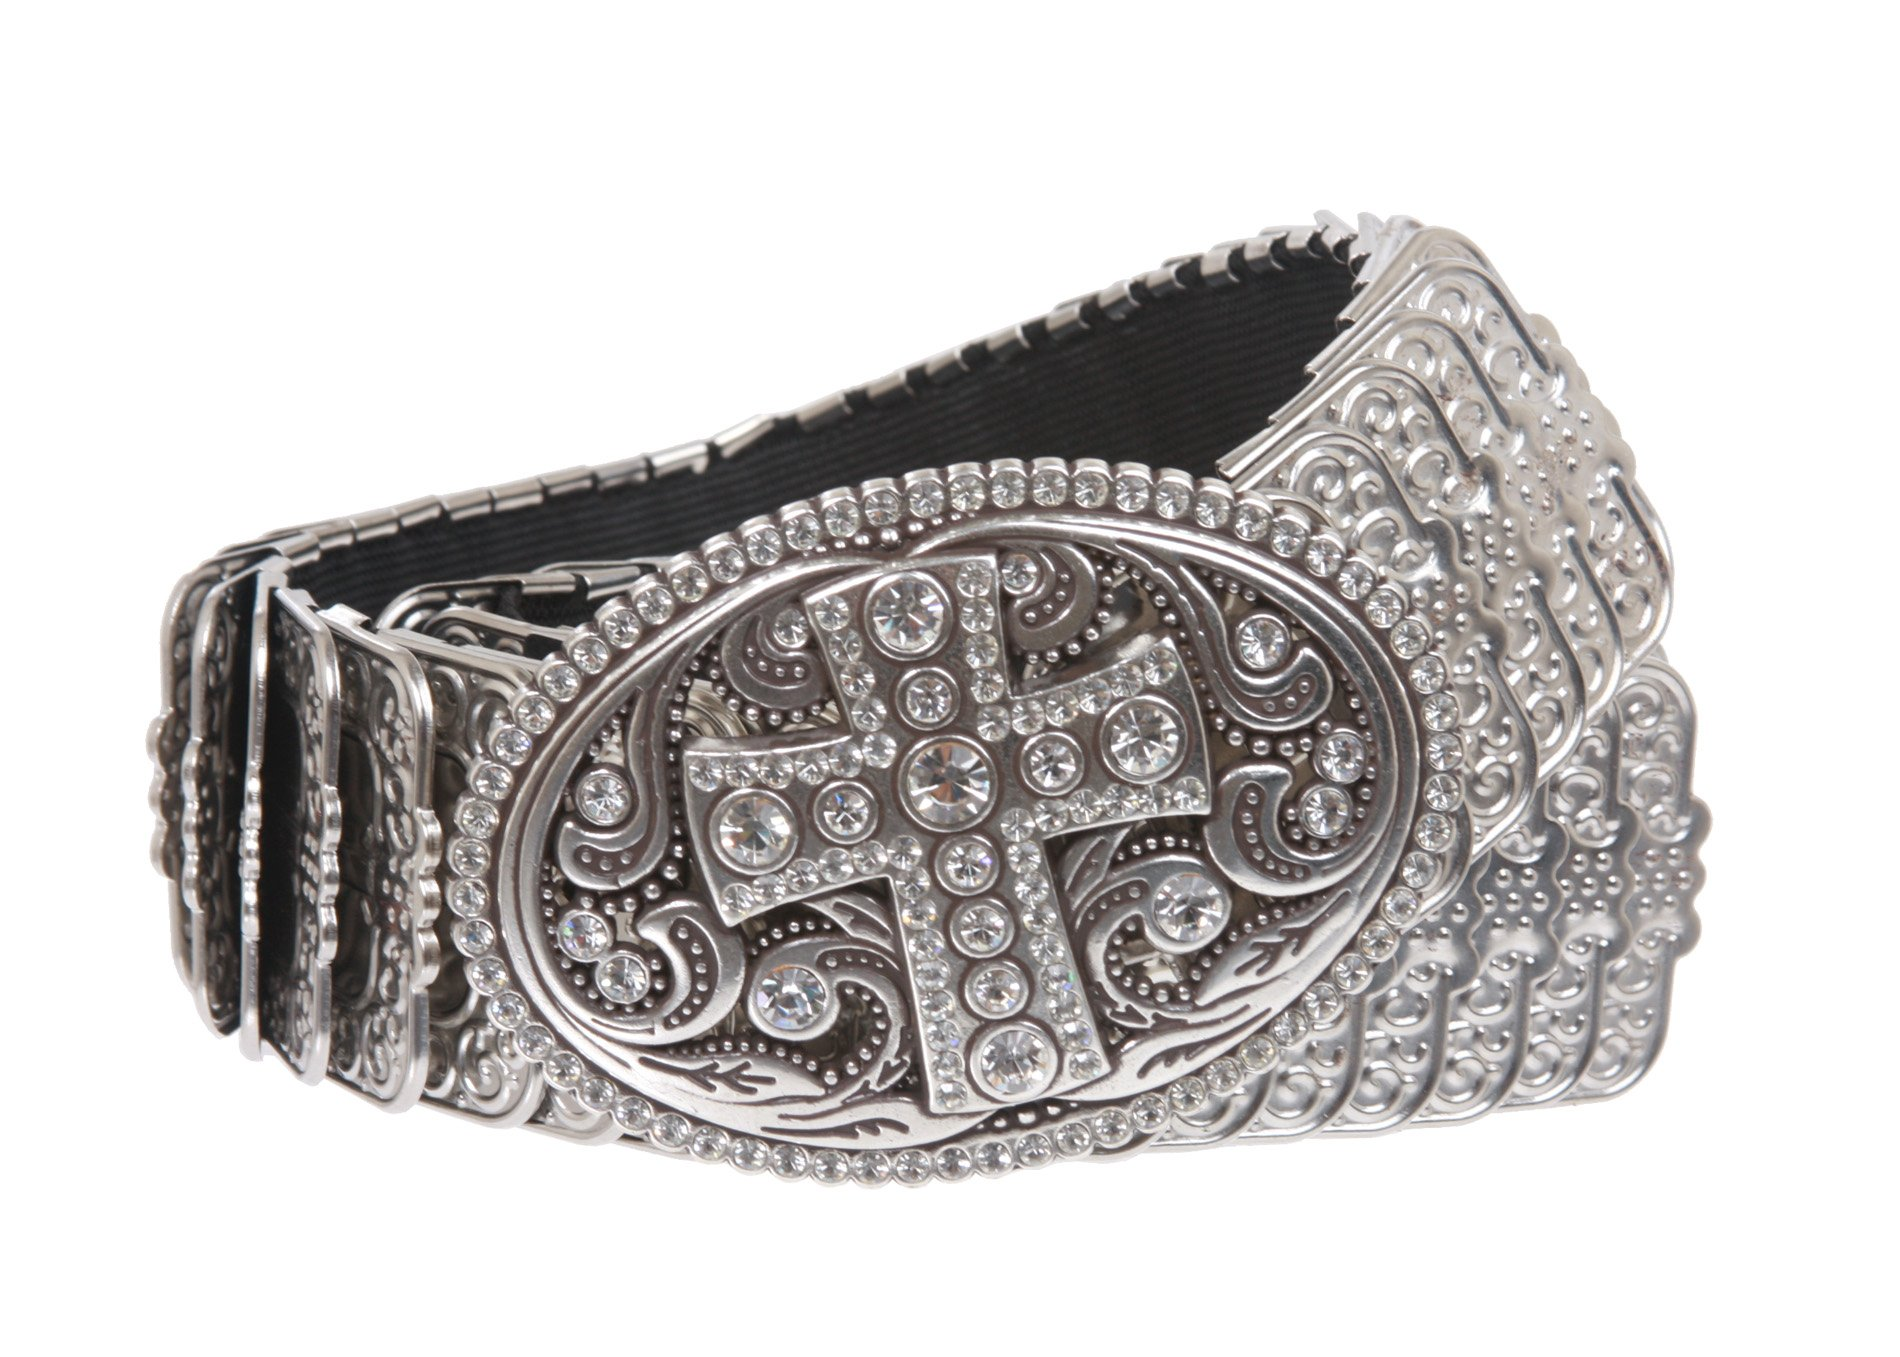 1 3/4'' Perforated Oval Rhinestone Religious Cross Sequent Metal Stretch Belt Size: M/L Color: Silver